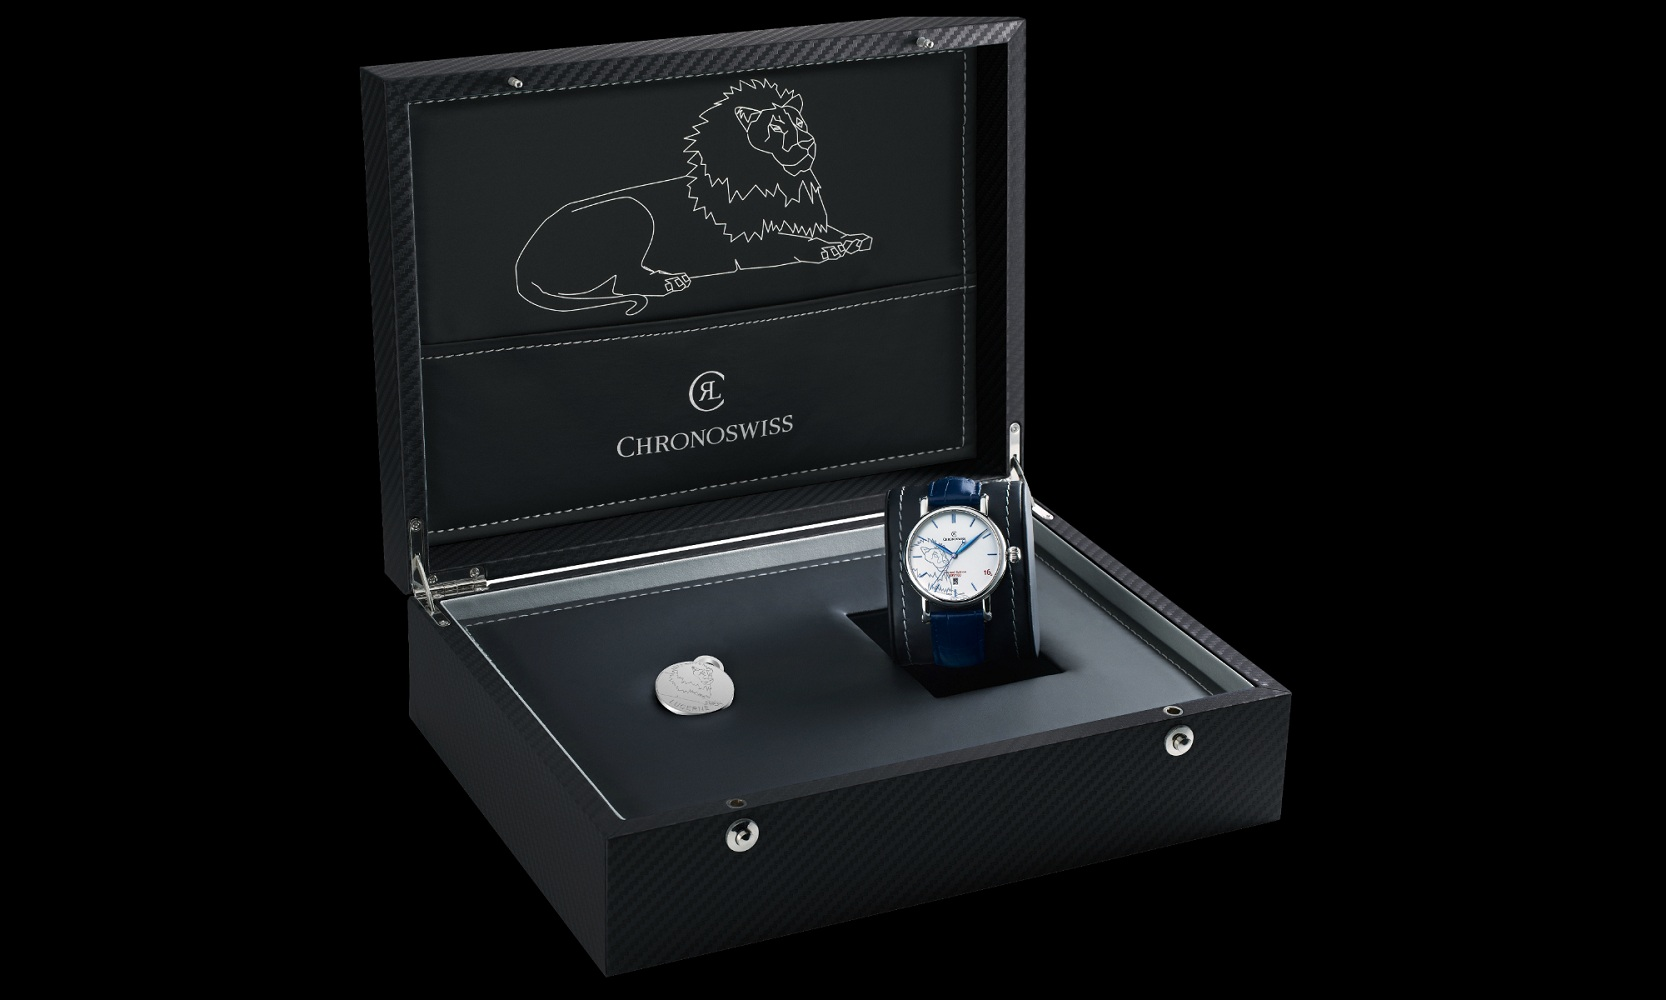 Chronoswiss Sirius Lion Special Editions - Packaging